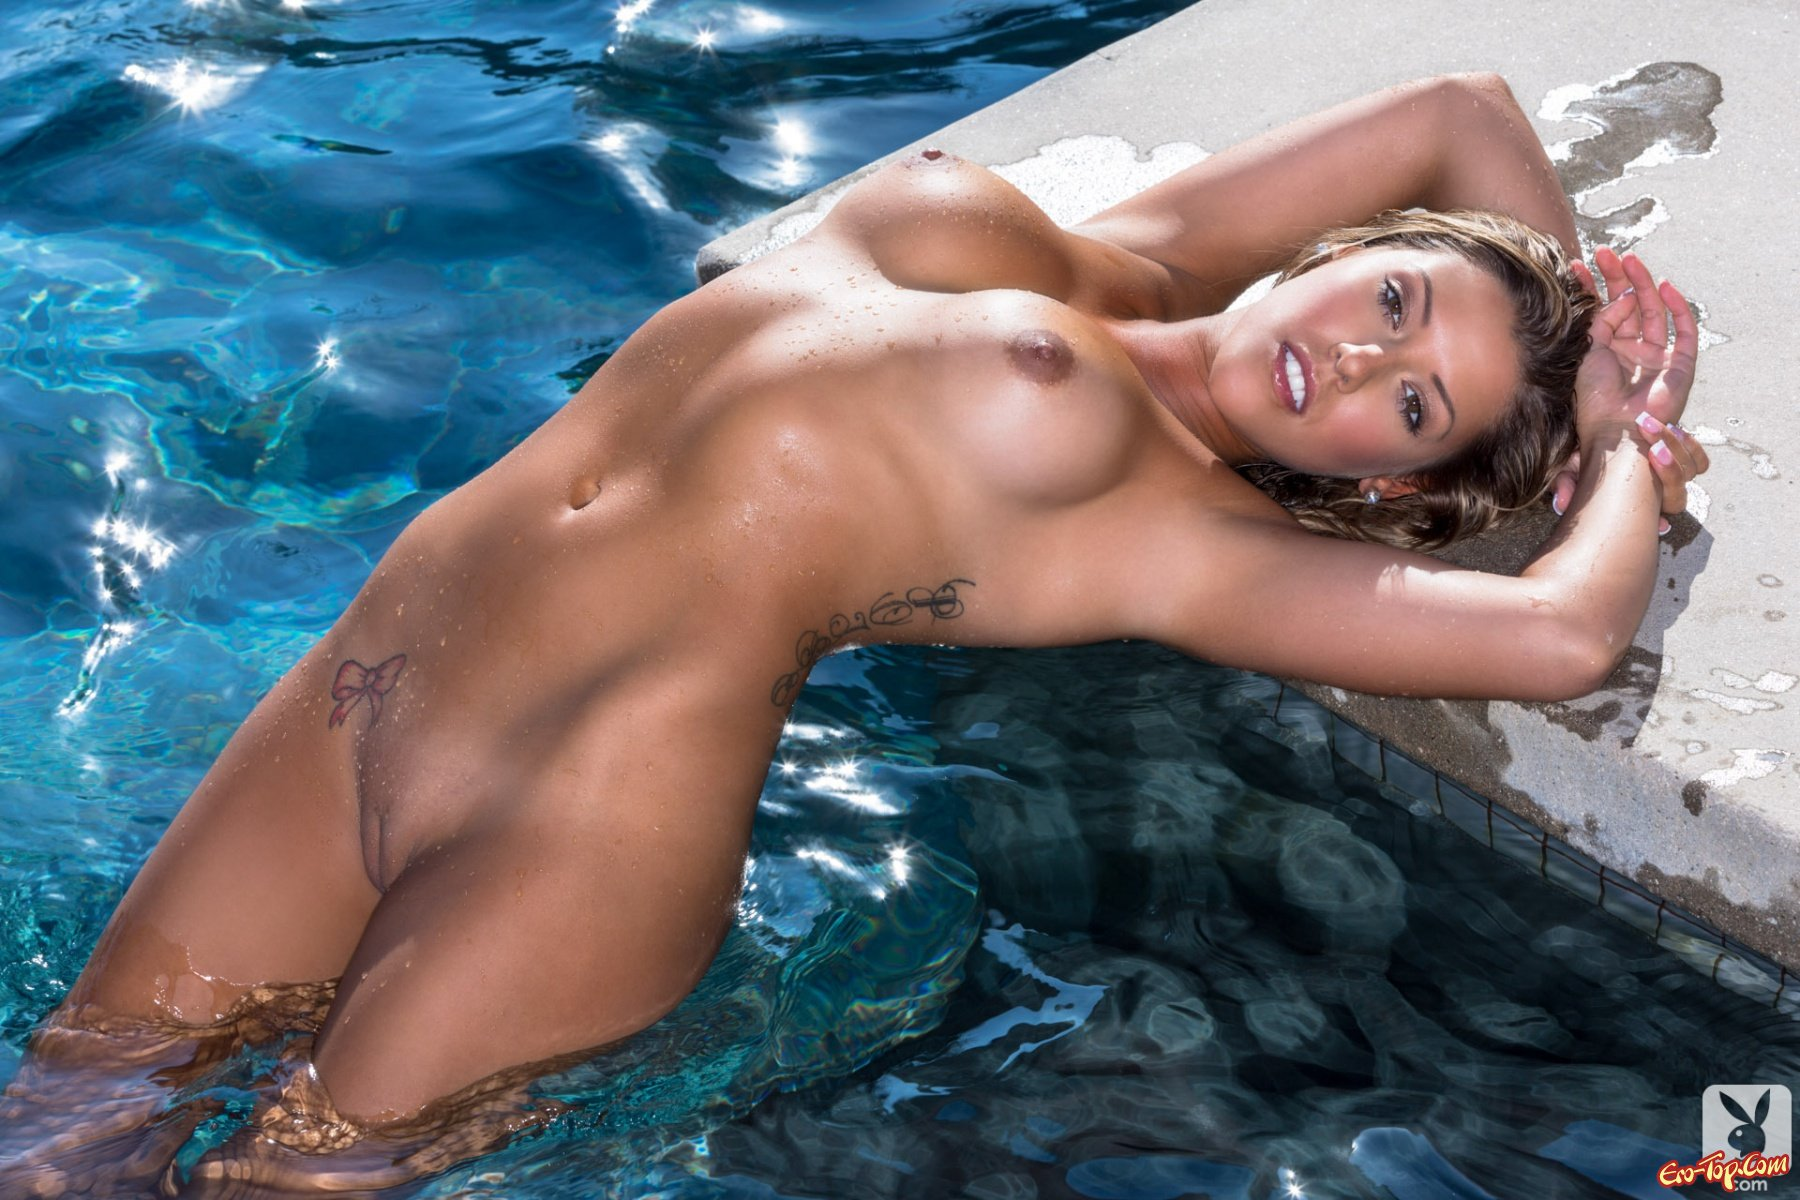 Girls naked getting wet #10